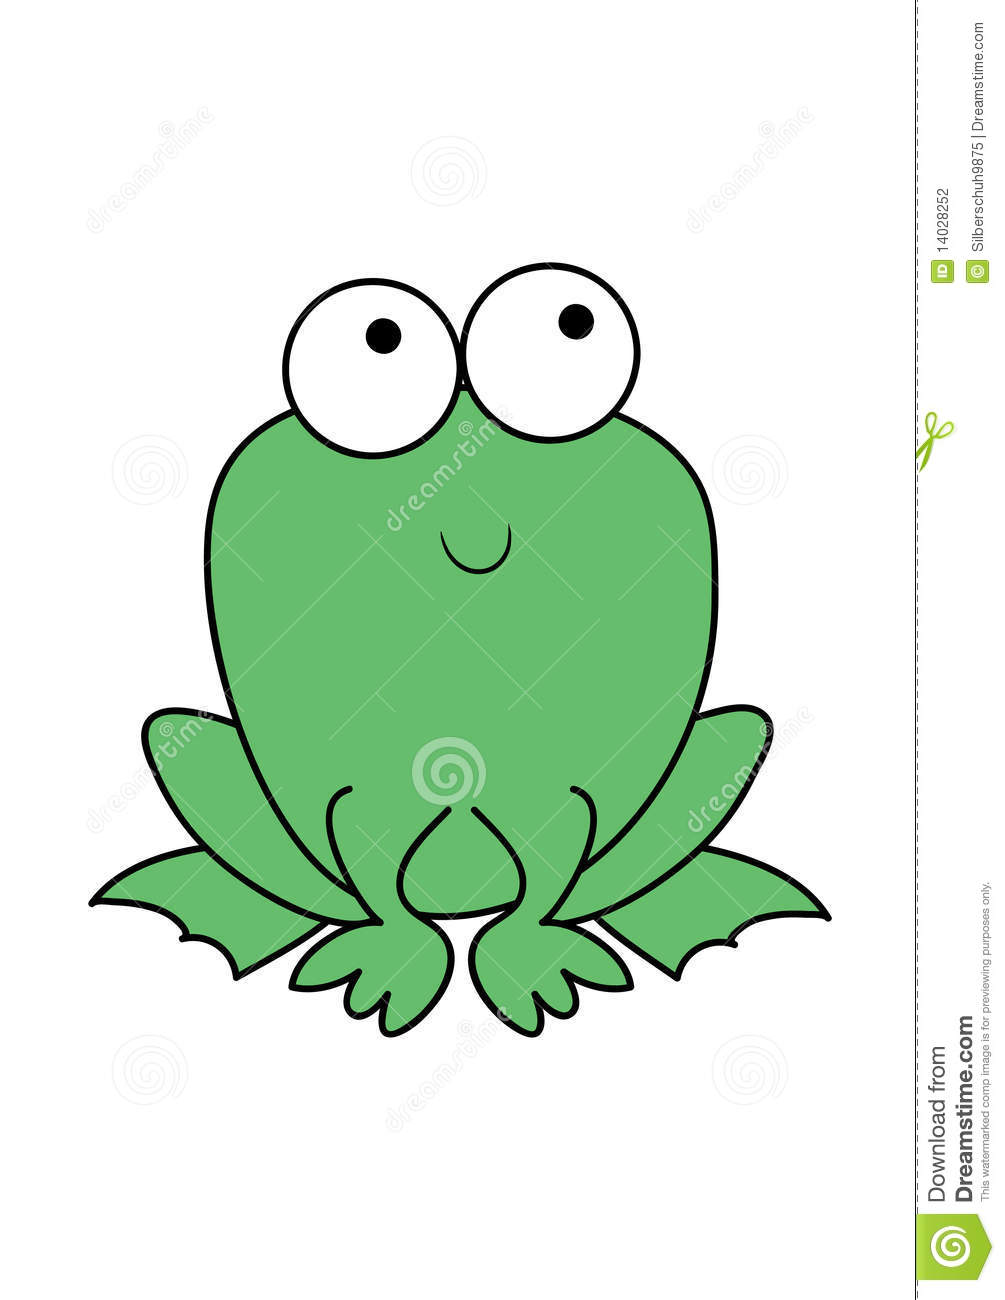 cute green cartoon frog stock vector illustration of friendly